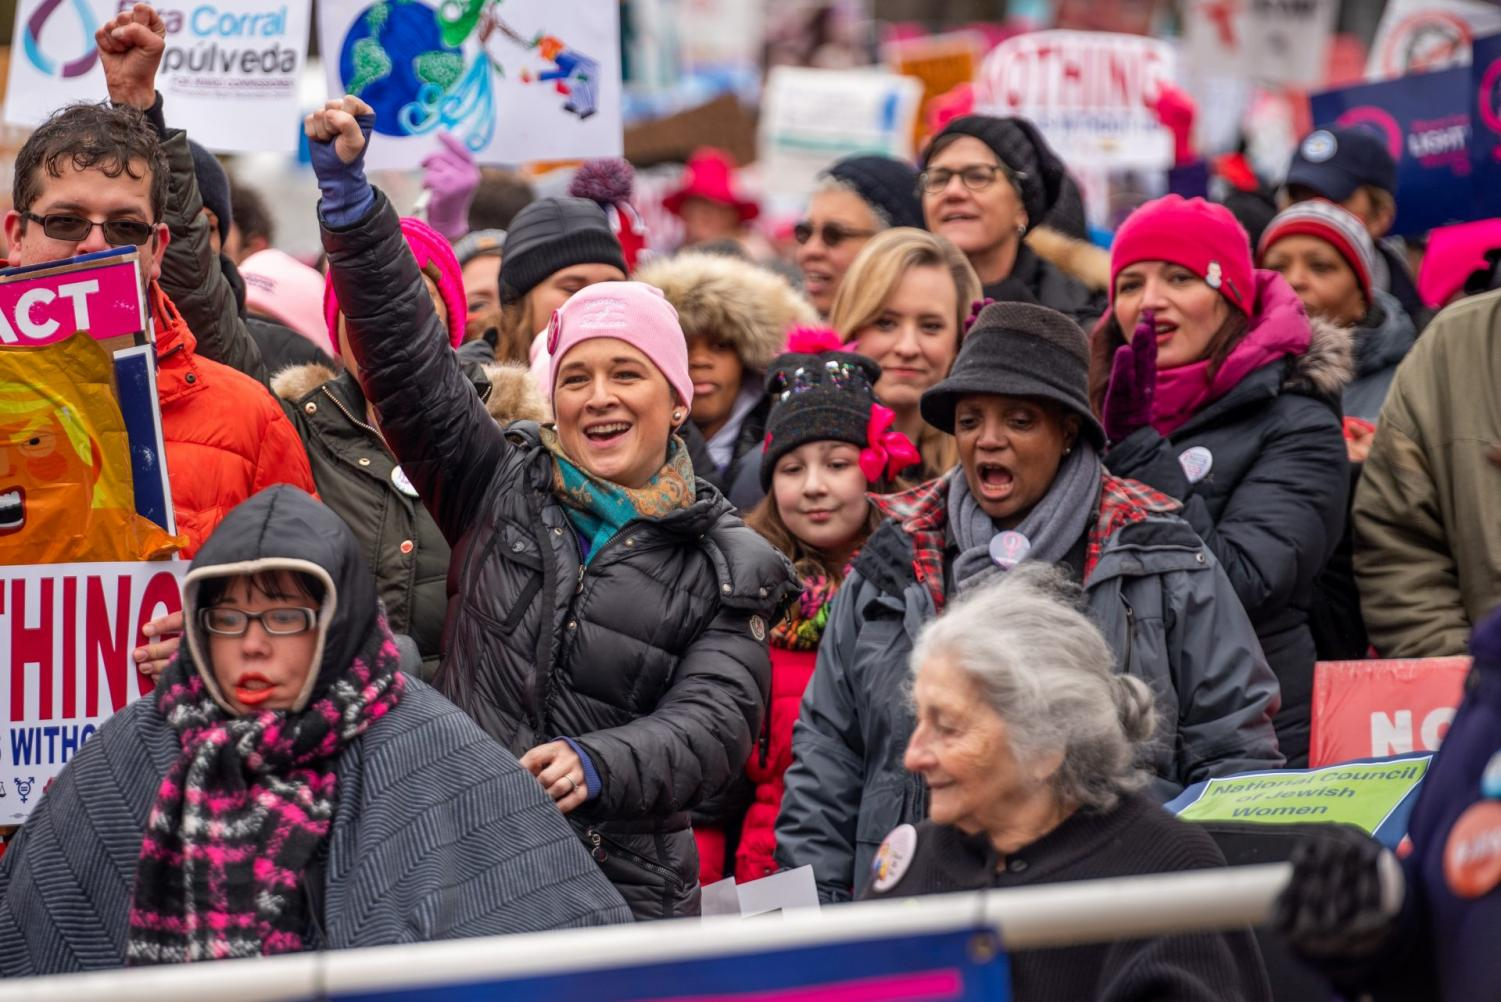 Illinois comptroller Susana Mendoza and Chicago Mayor Lori Lightfoot lead the annual Women's March Chicago.